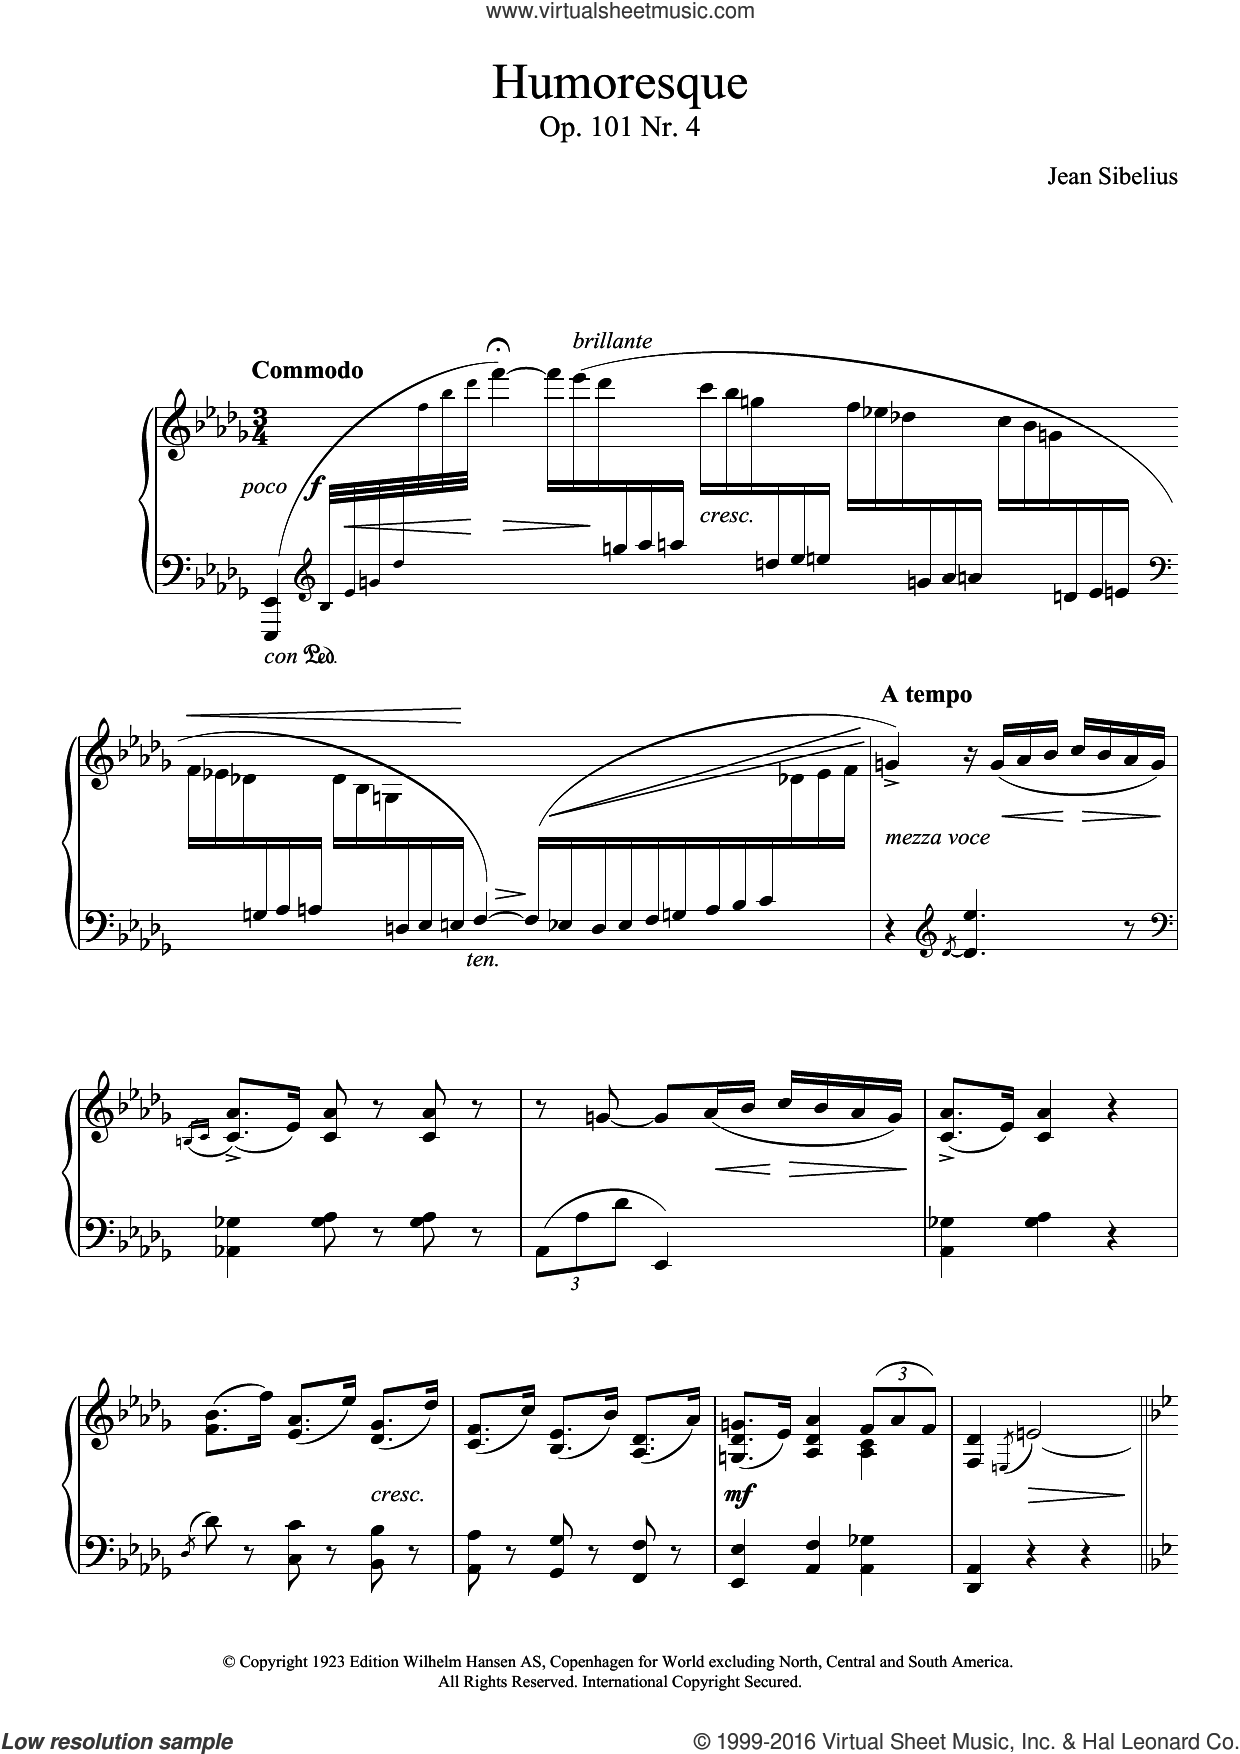 5 Morceaux Romantiques, Op.101 - IV. Humoresque sheet music for piano solo by Jean Sibelius. Score Image Preview.